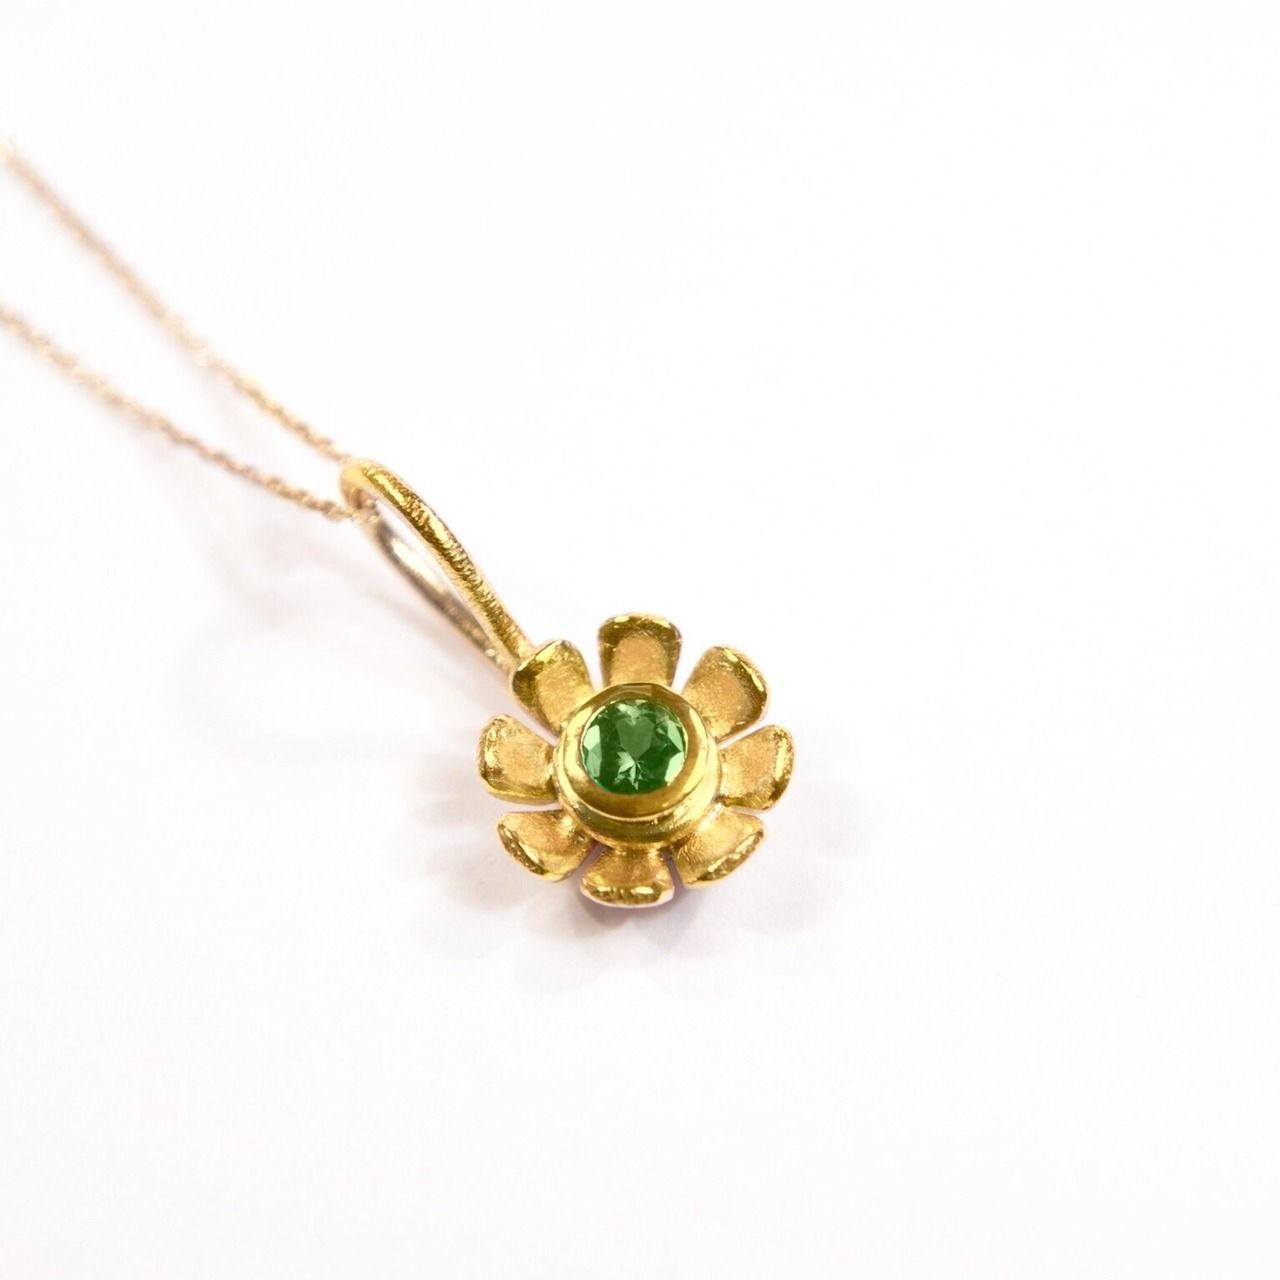 Daisy flower pendant ct yellow gold small daisy emerald